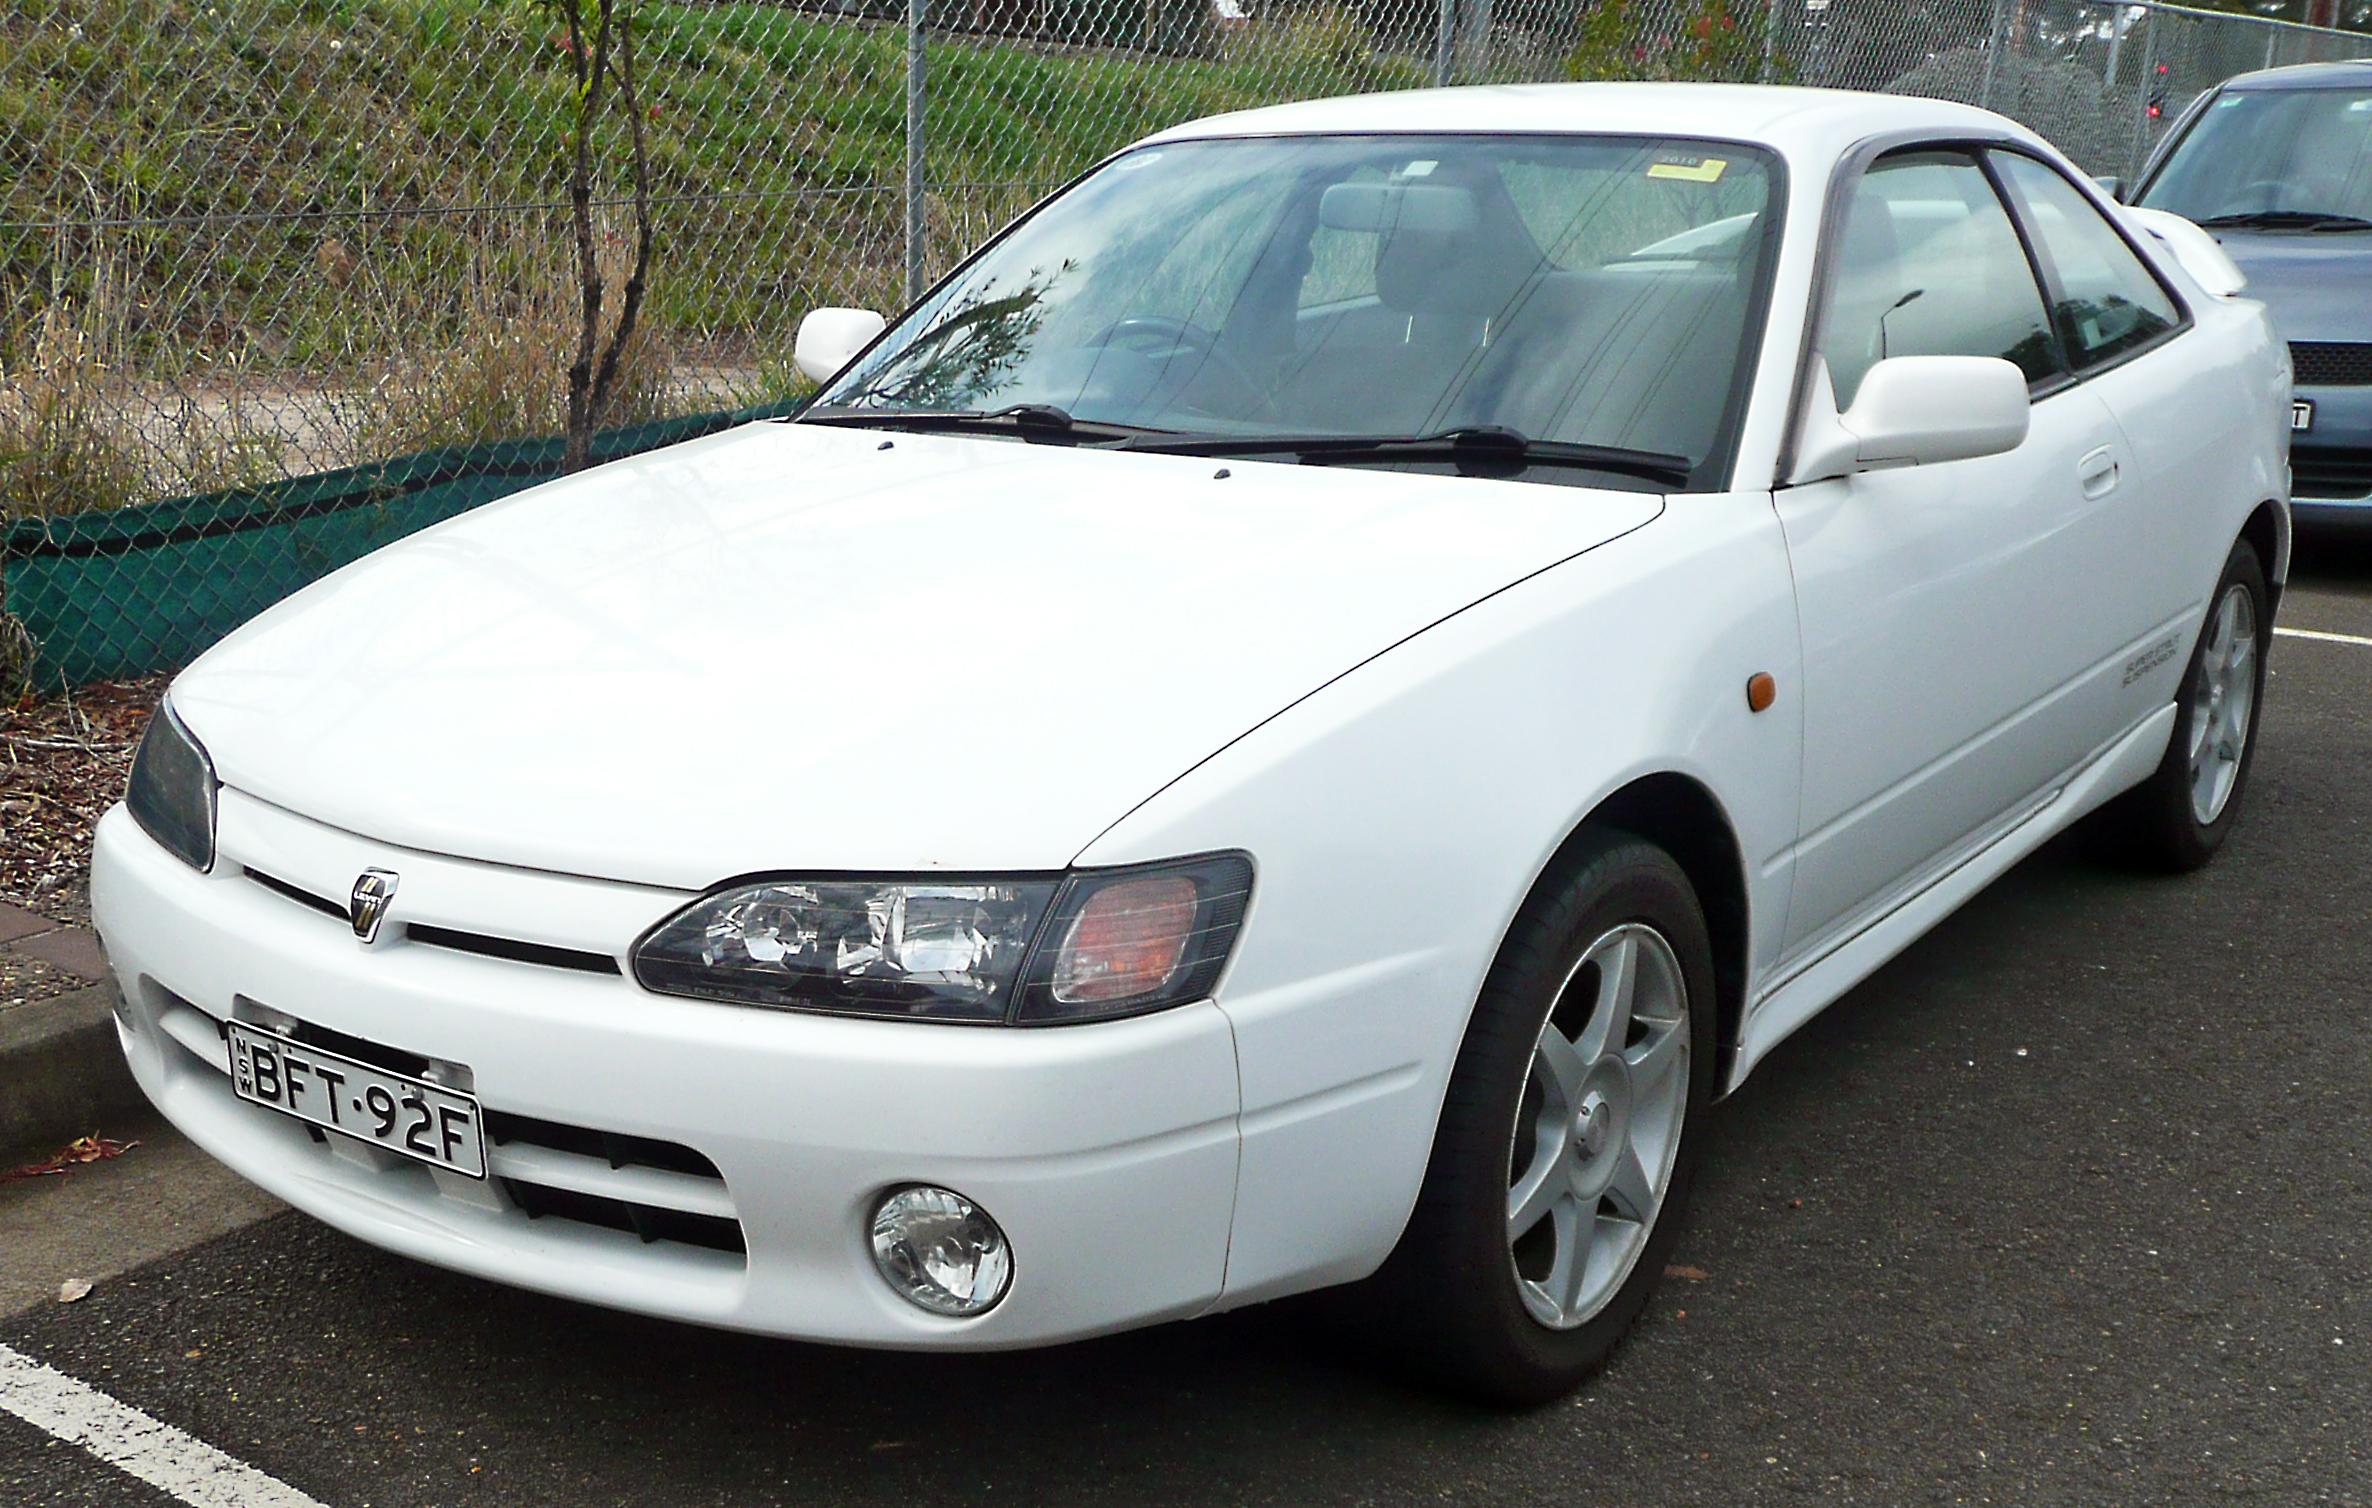 1998 Toyota Corolla Wagon Bz Touring 1 6 Automatic Related